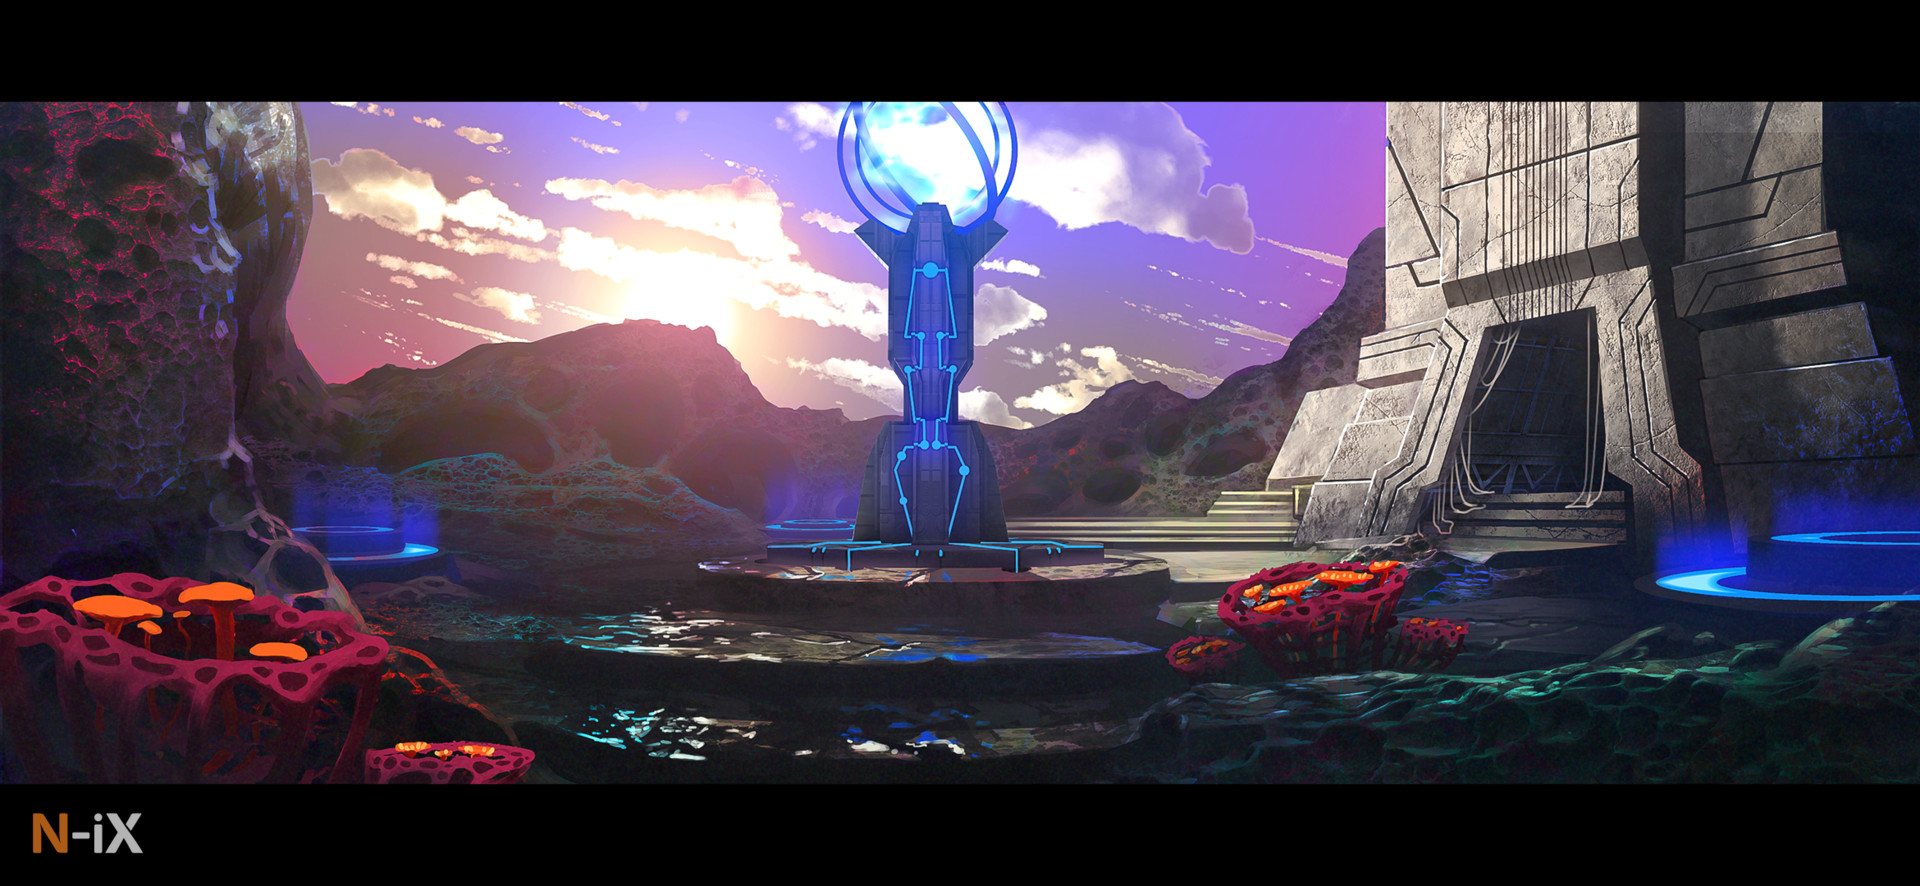 Concept of distant world architecture